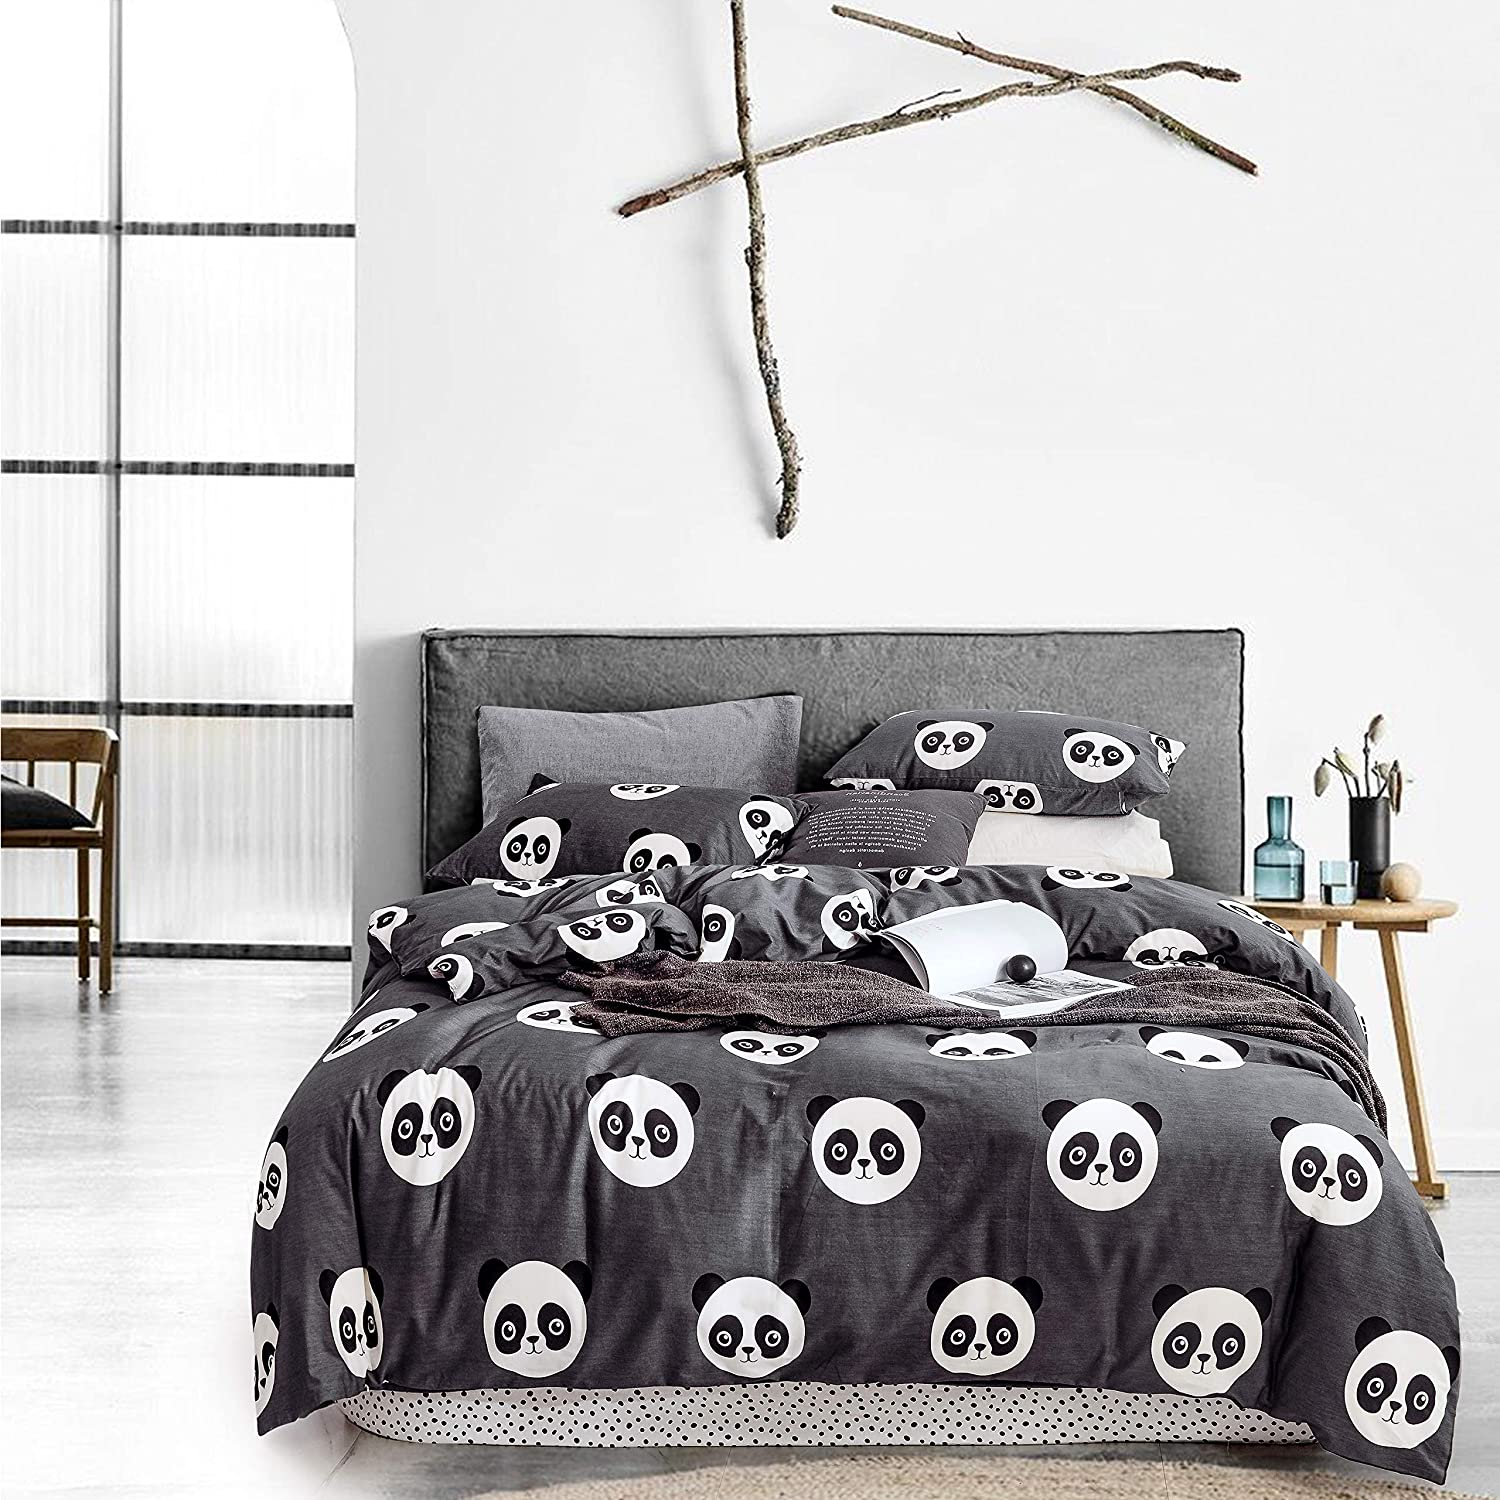 Printed Pattern with Zipper Closure Soft Breathable Brown and White 3pcs Bedding Set Leopard Print Twin 1 Duvet Cover + 2 Pillow Shams Sleepymoon Cotton Duvet Cover Set